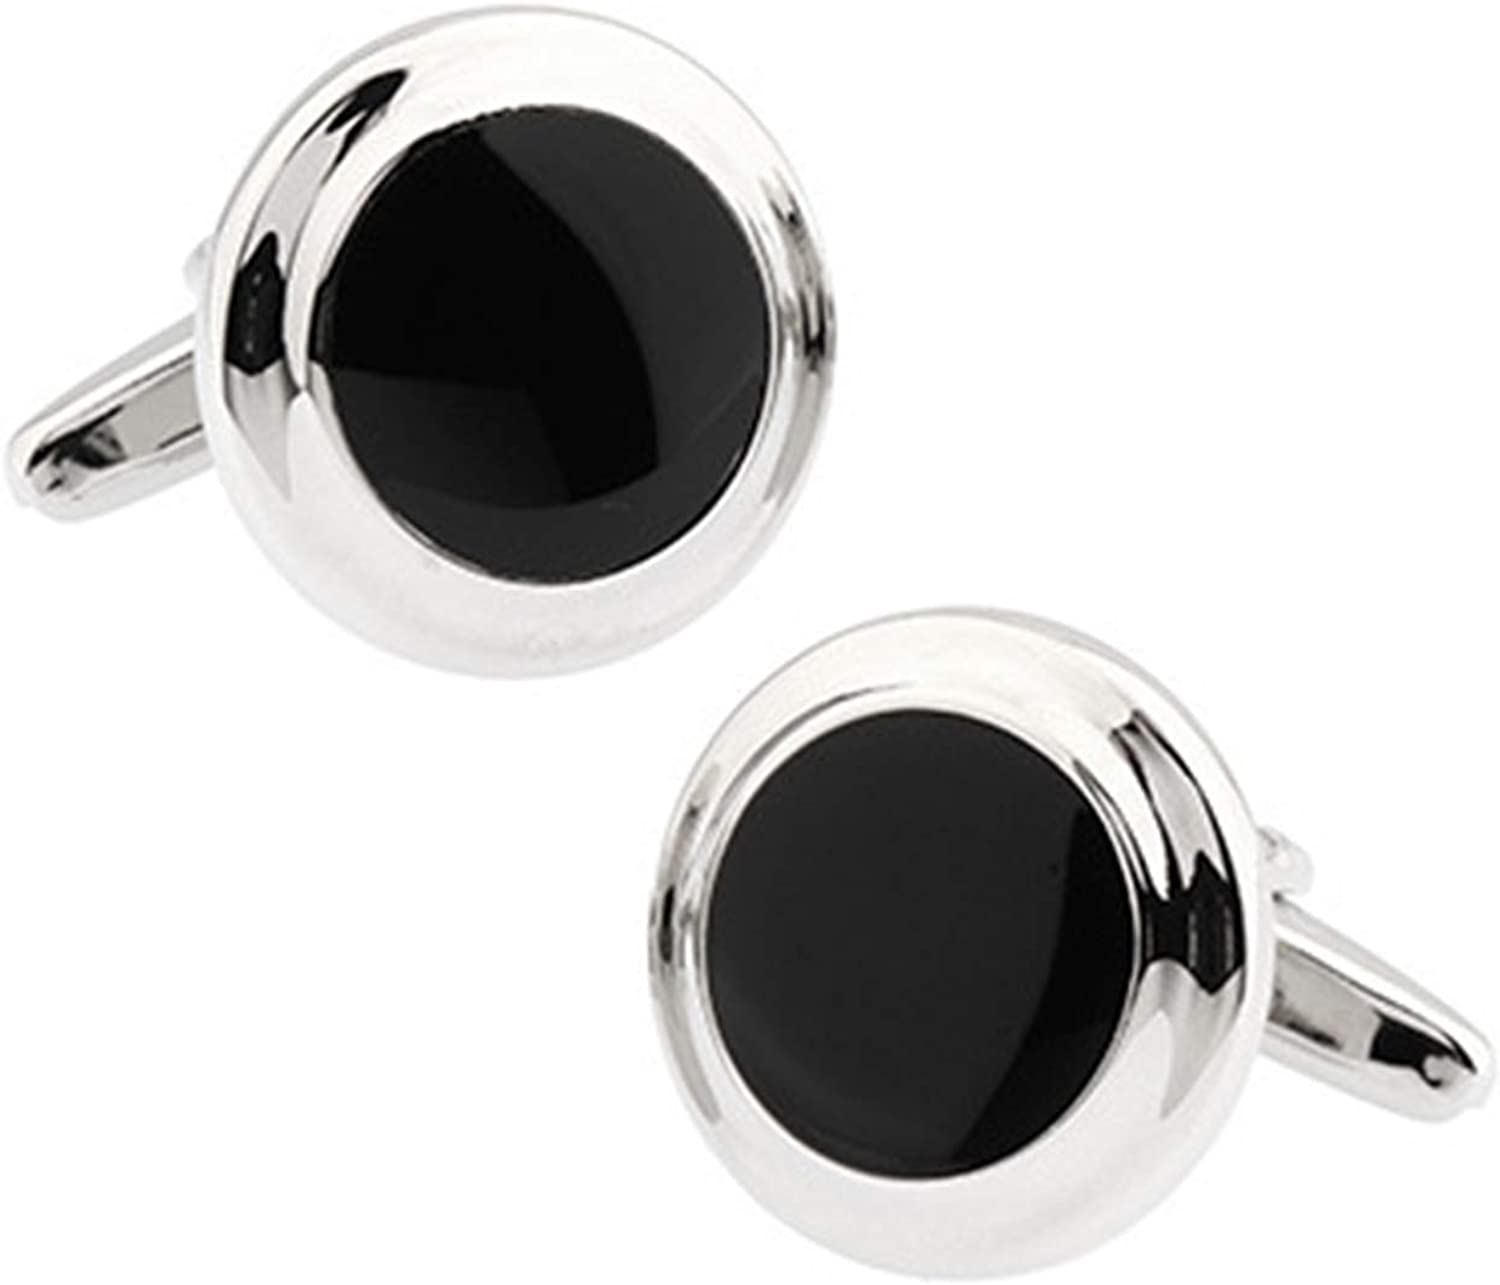 KnBoB Indefinitely Men Cufflinks Round Silver Personalized Gi Black Sales for sale